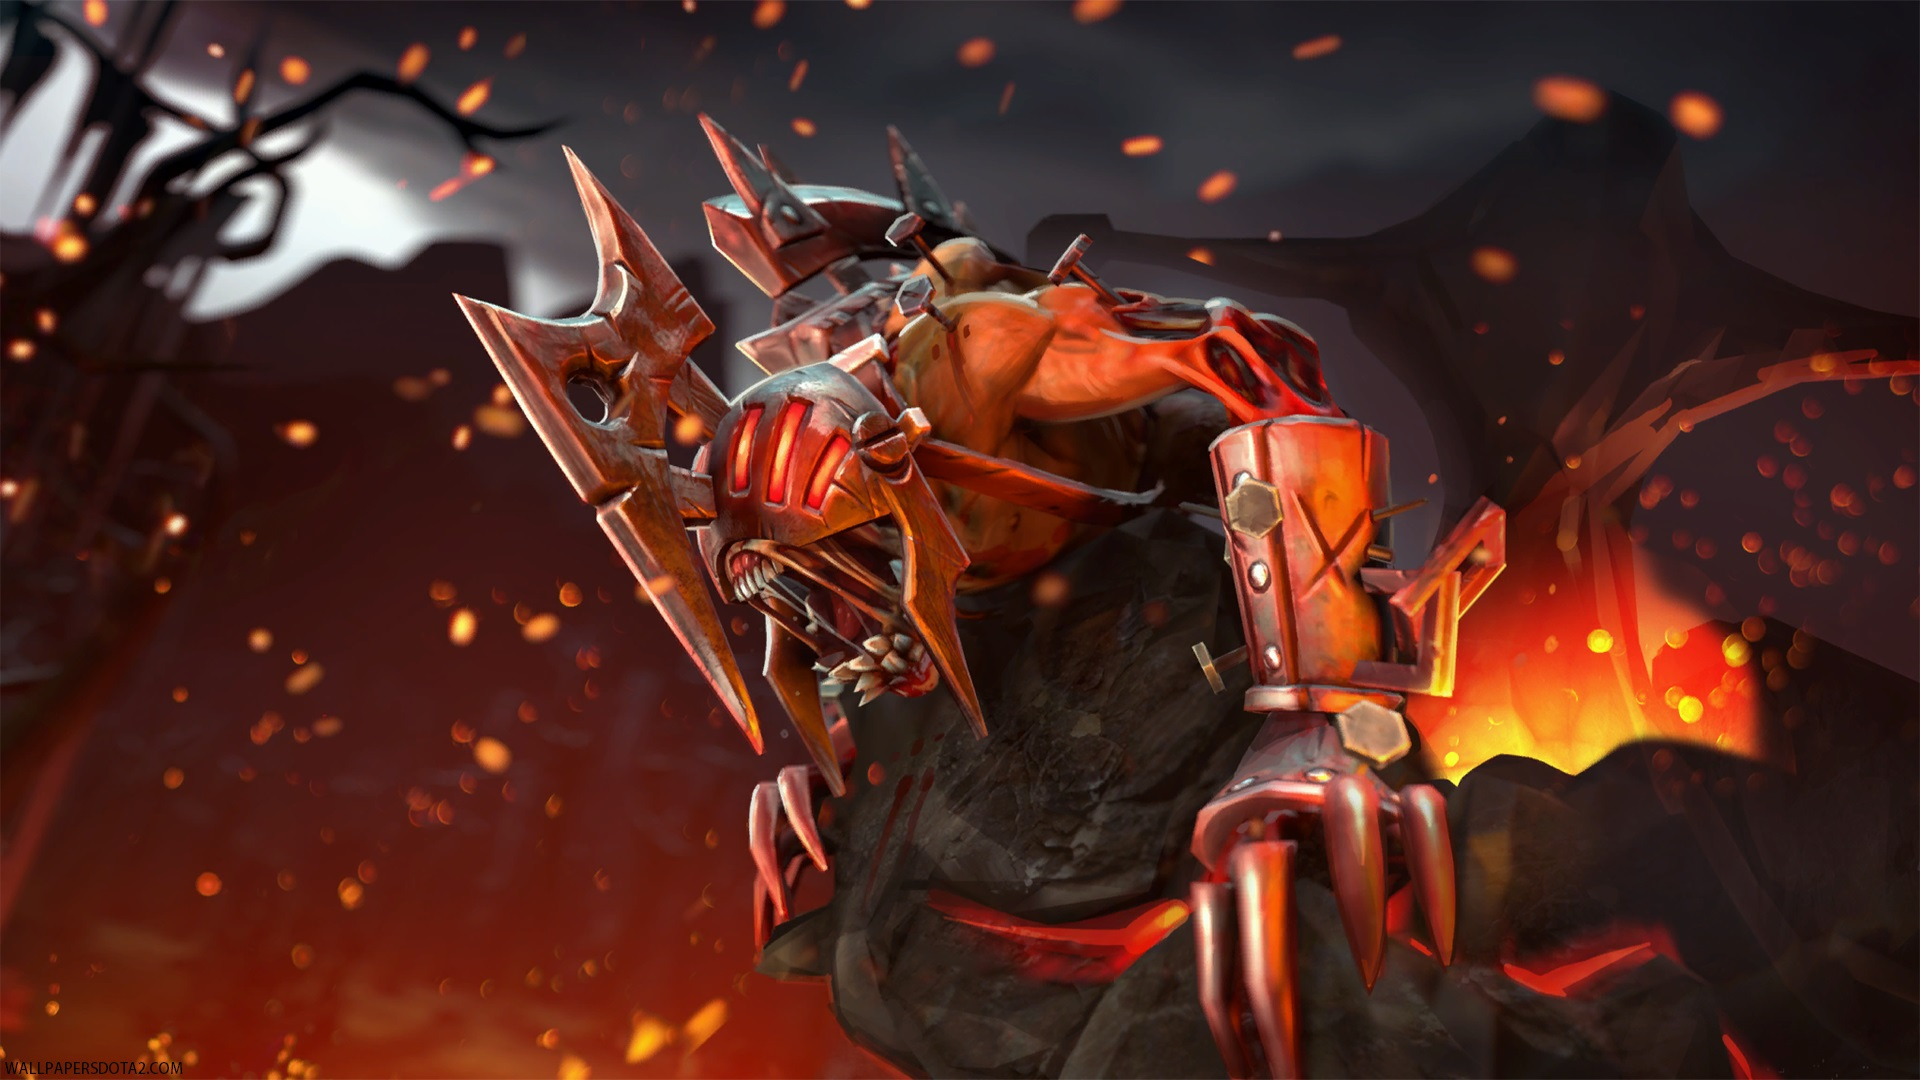 lifestealer dota 2 high resolution wallpapers for desktop